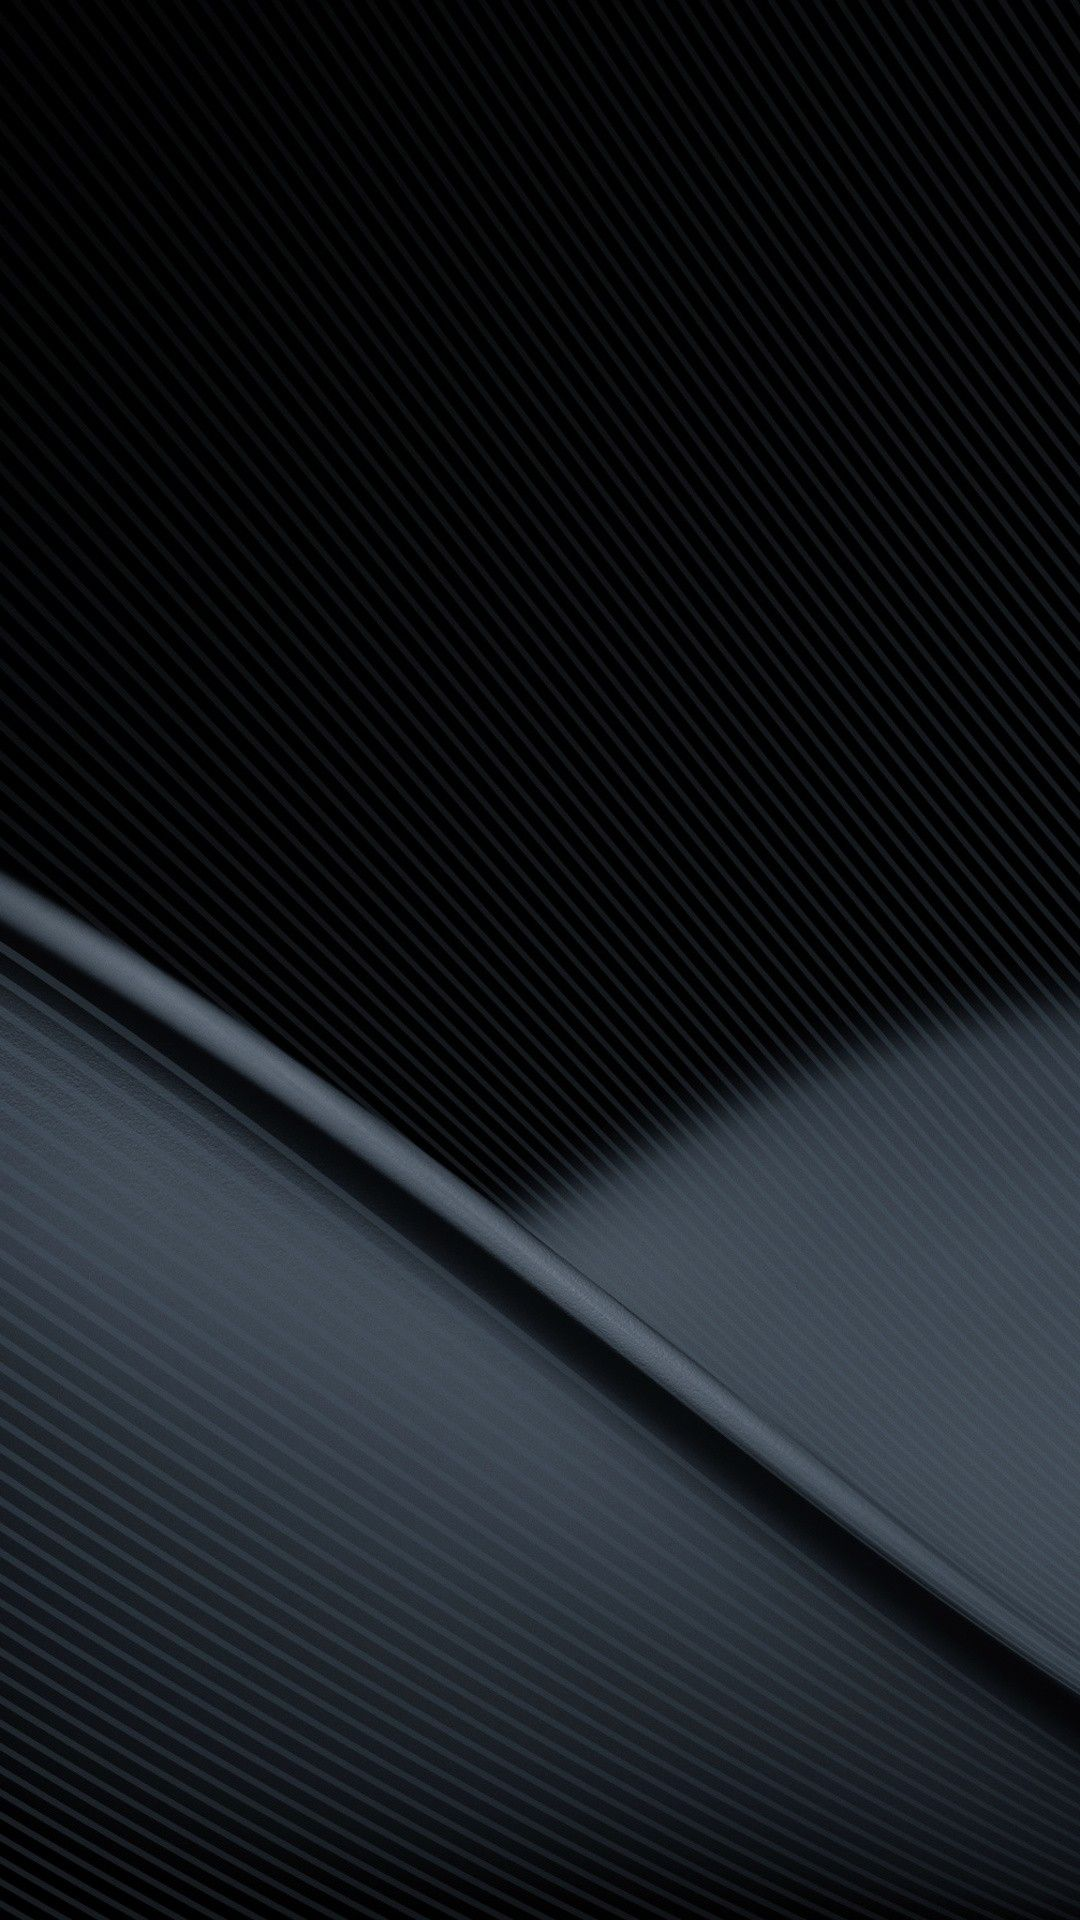 Black Phone Wallpaper Handy Hintergrund Hintergrund Design Hintergrund